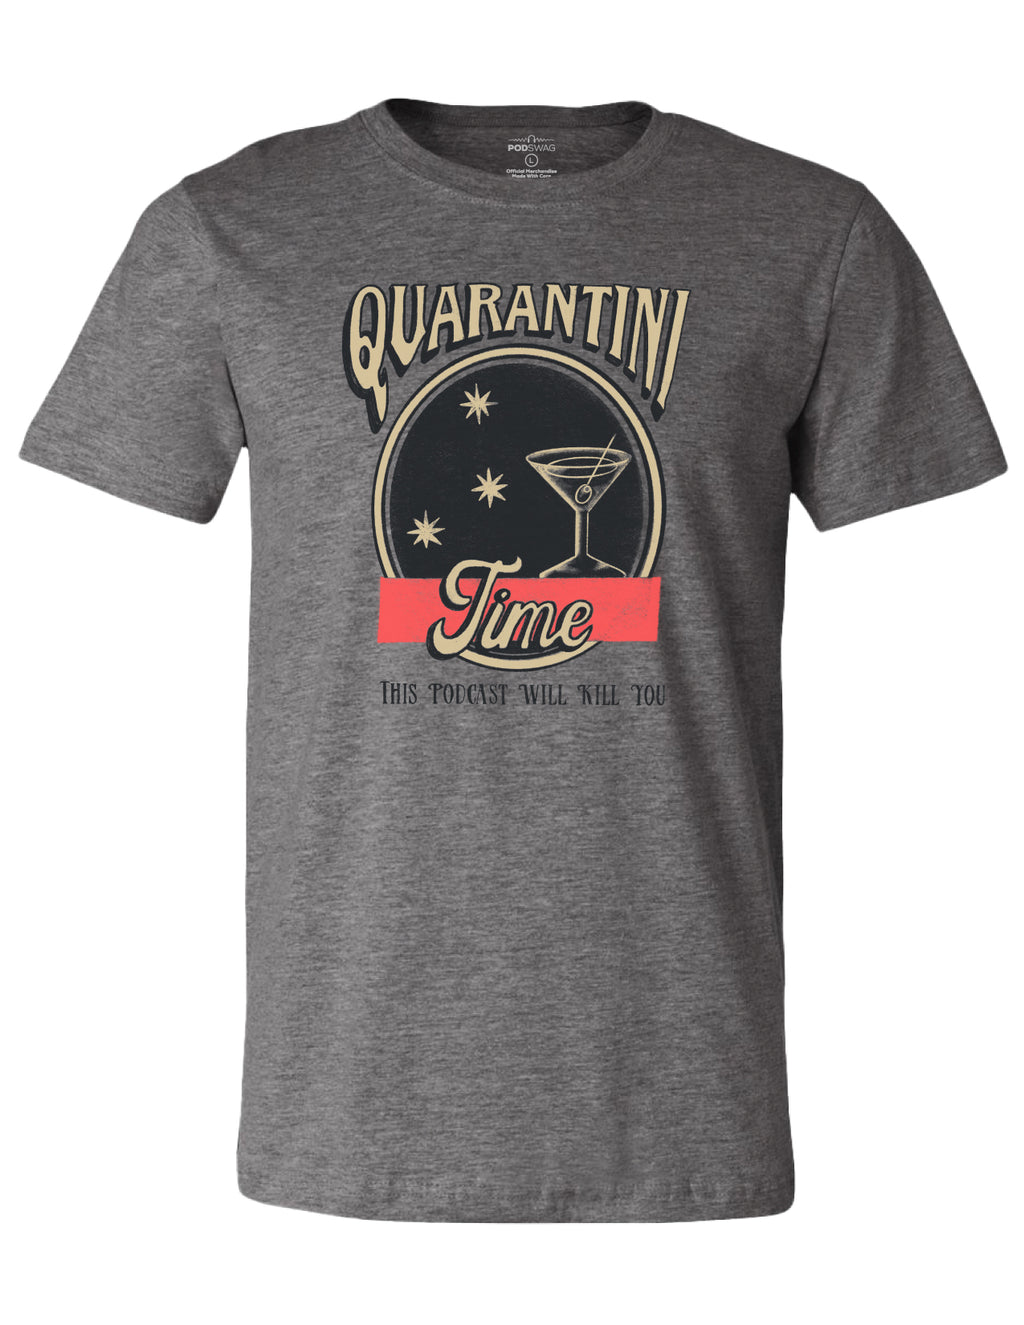 This Podcast Will Kill You: Quarantini Time T-shirt